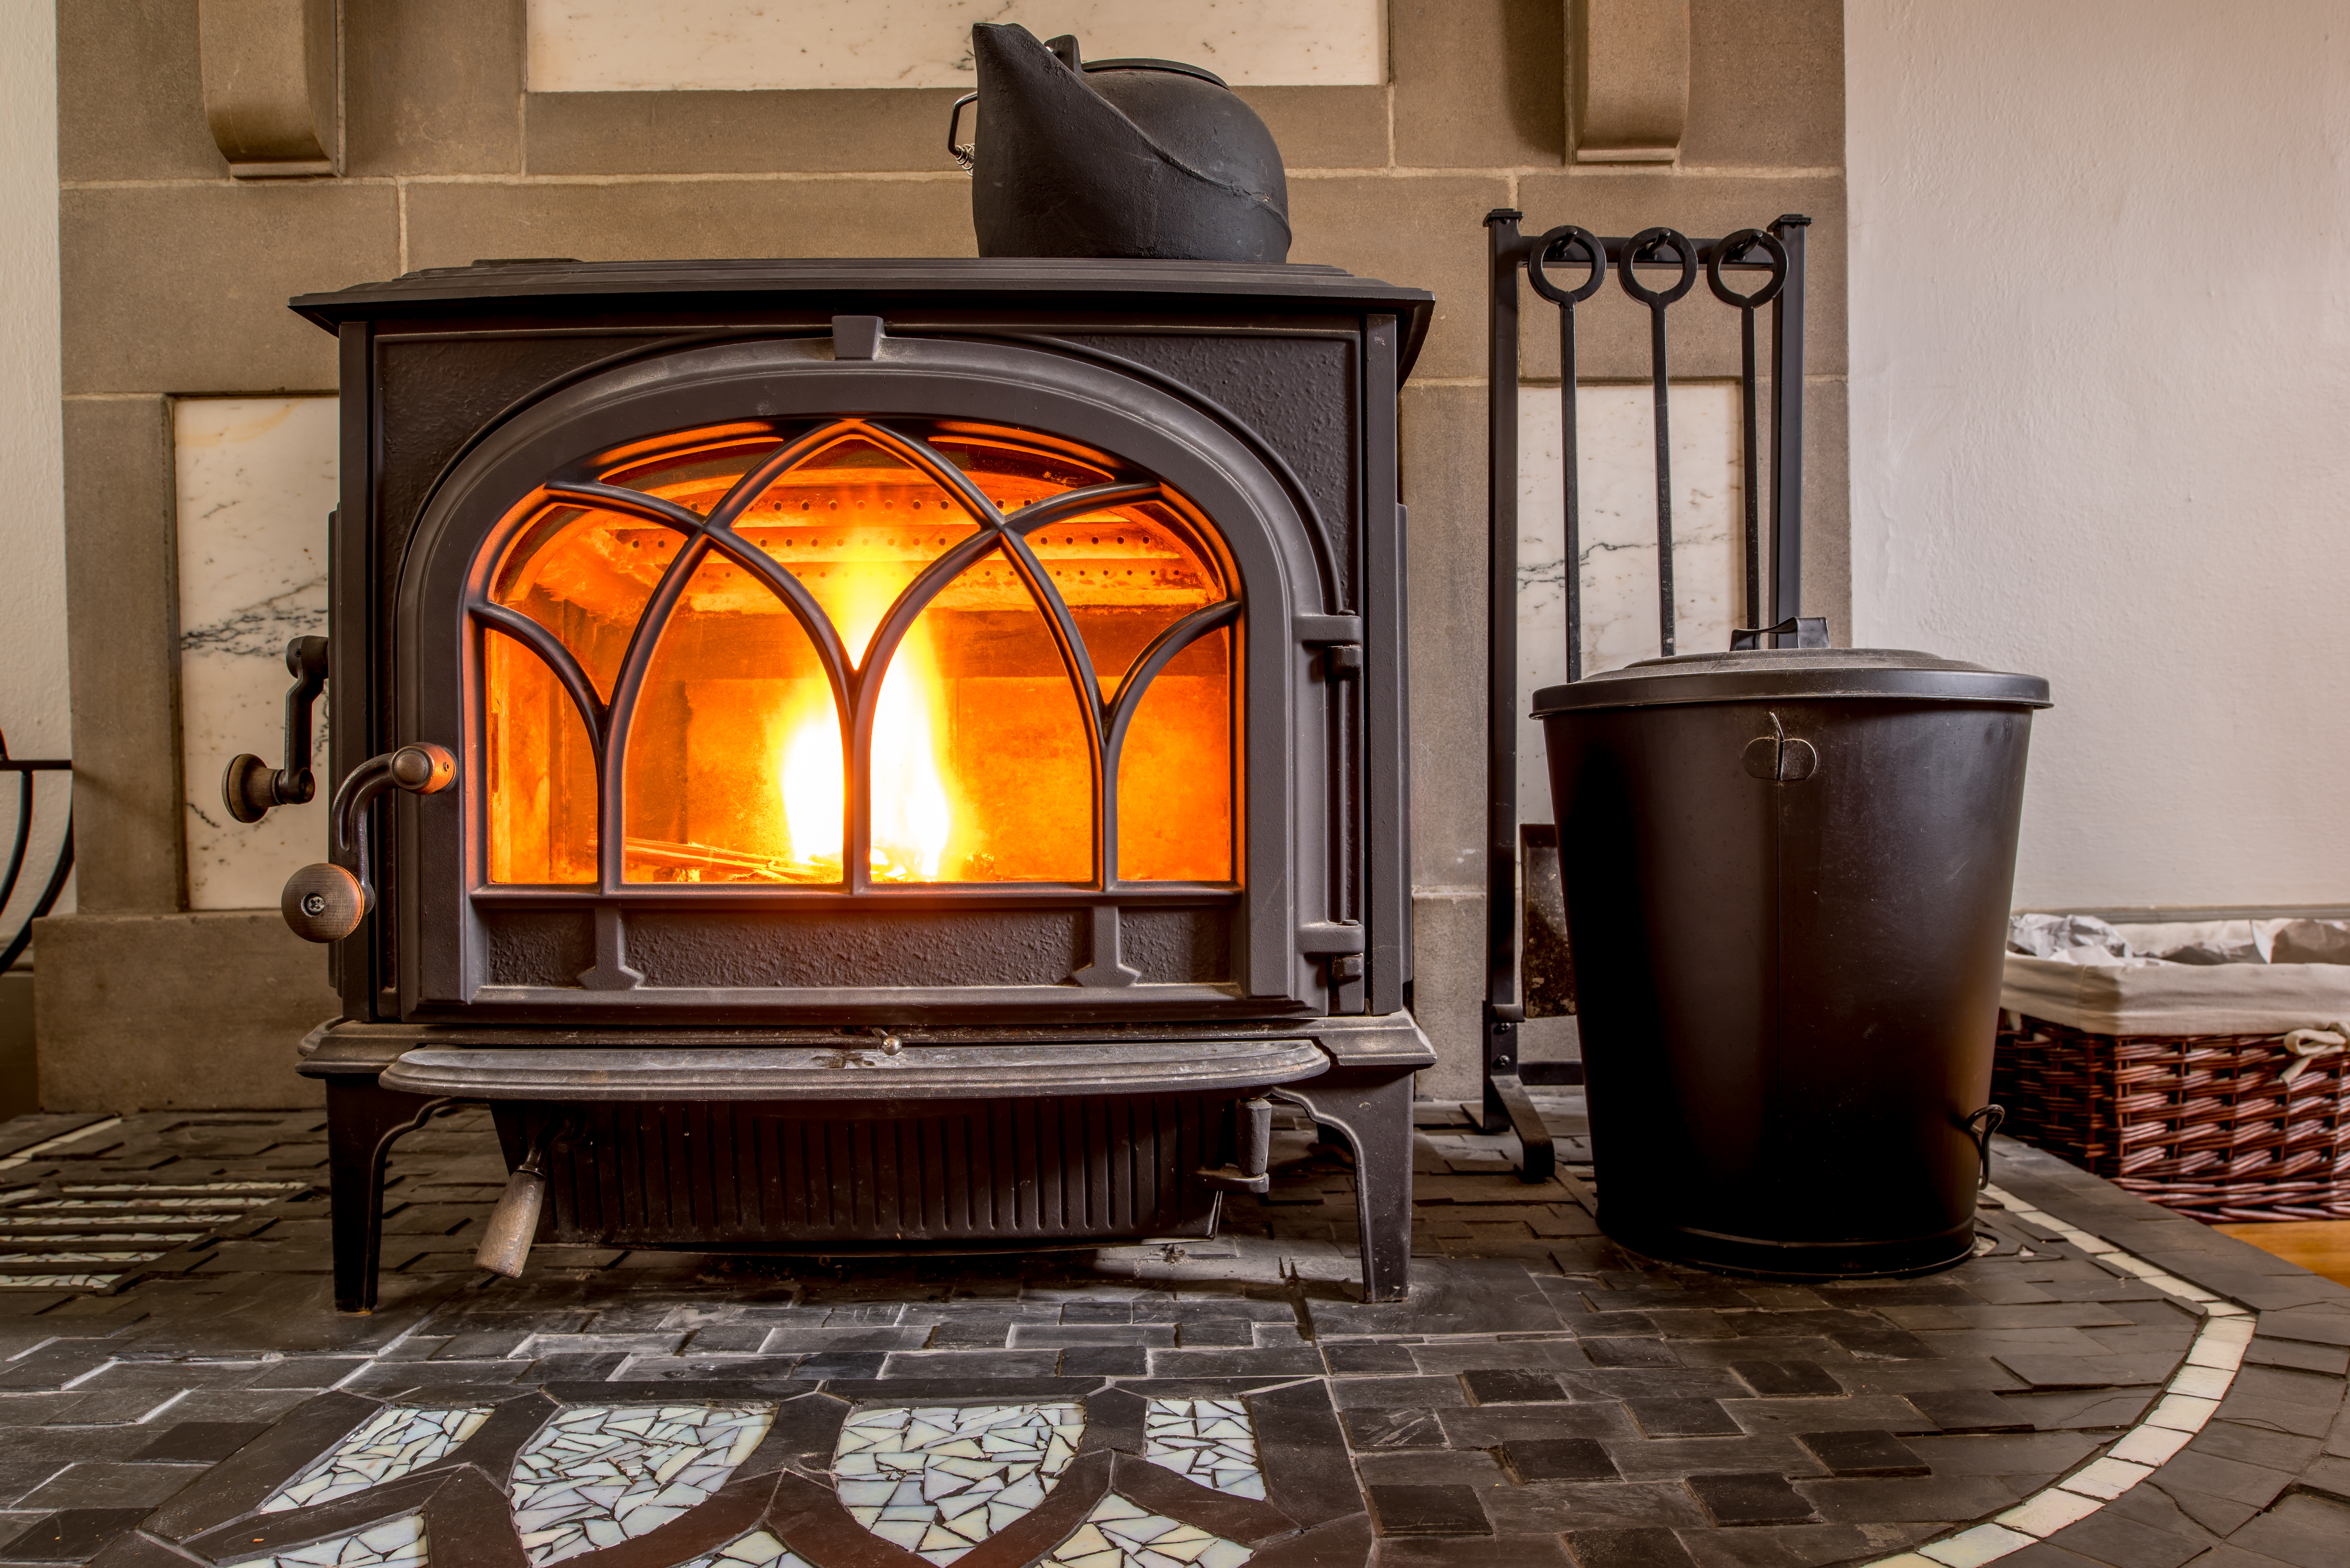 Pleasant Can You Install A Wood Burning Stove If You Dont Have A Home Interior And Landscaping Ologienasavecom